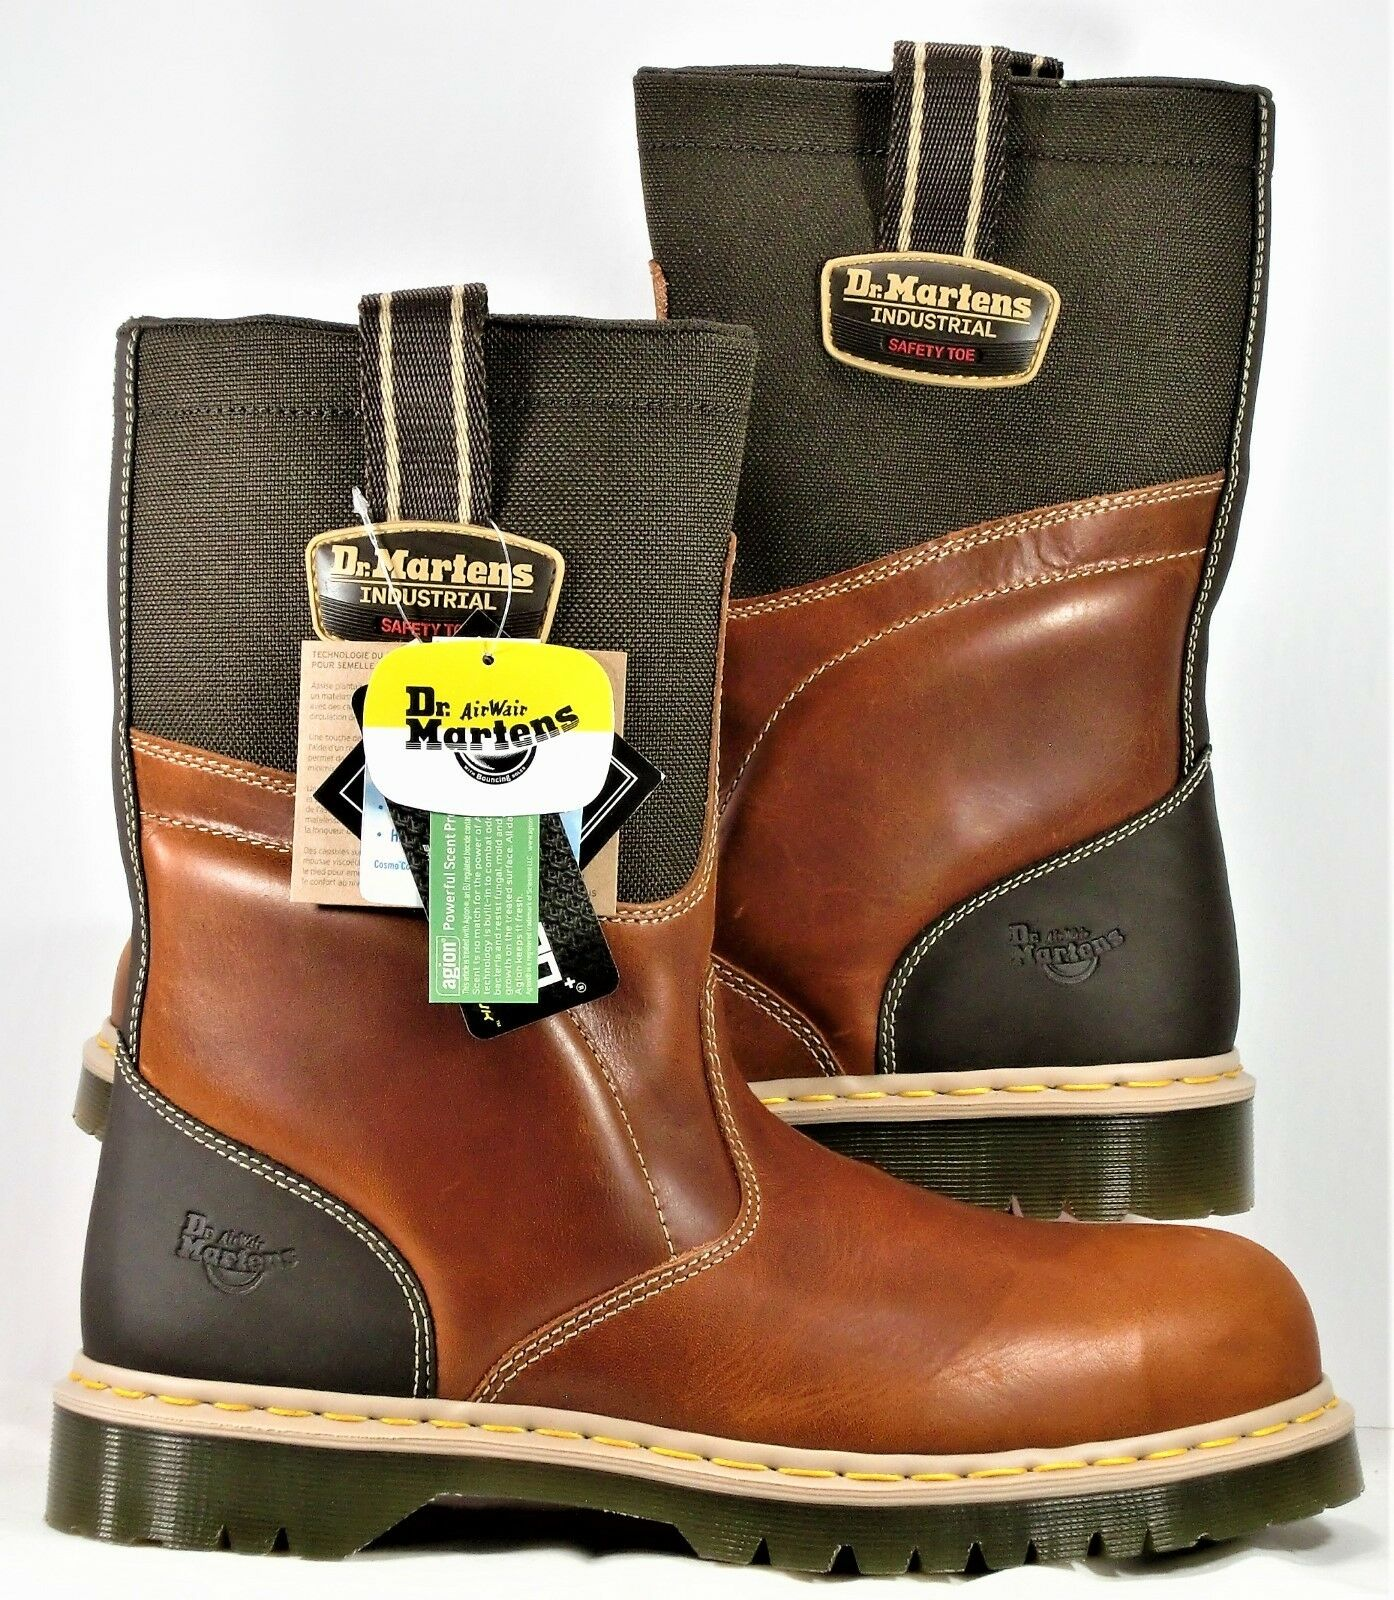 Dr Martens AirWair Steel Toe Safety Safety Safety Stiefel braun Leather SZ 12 NEW ASTM F2413 11 7b572a